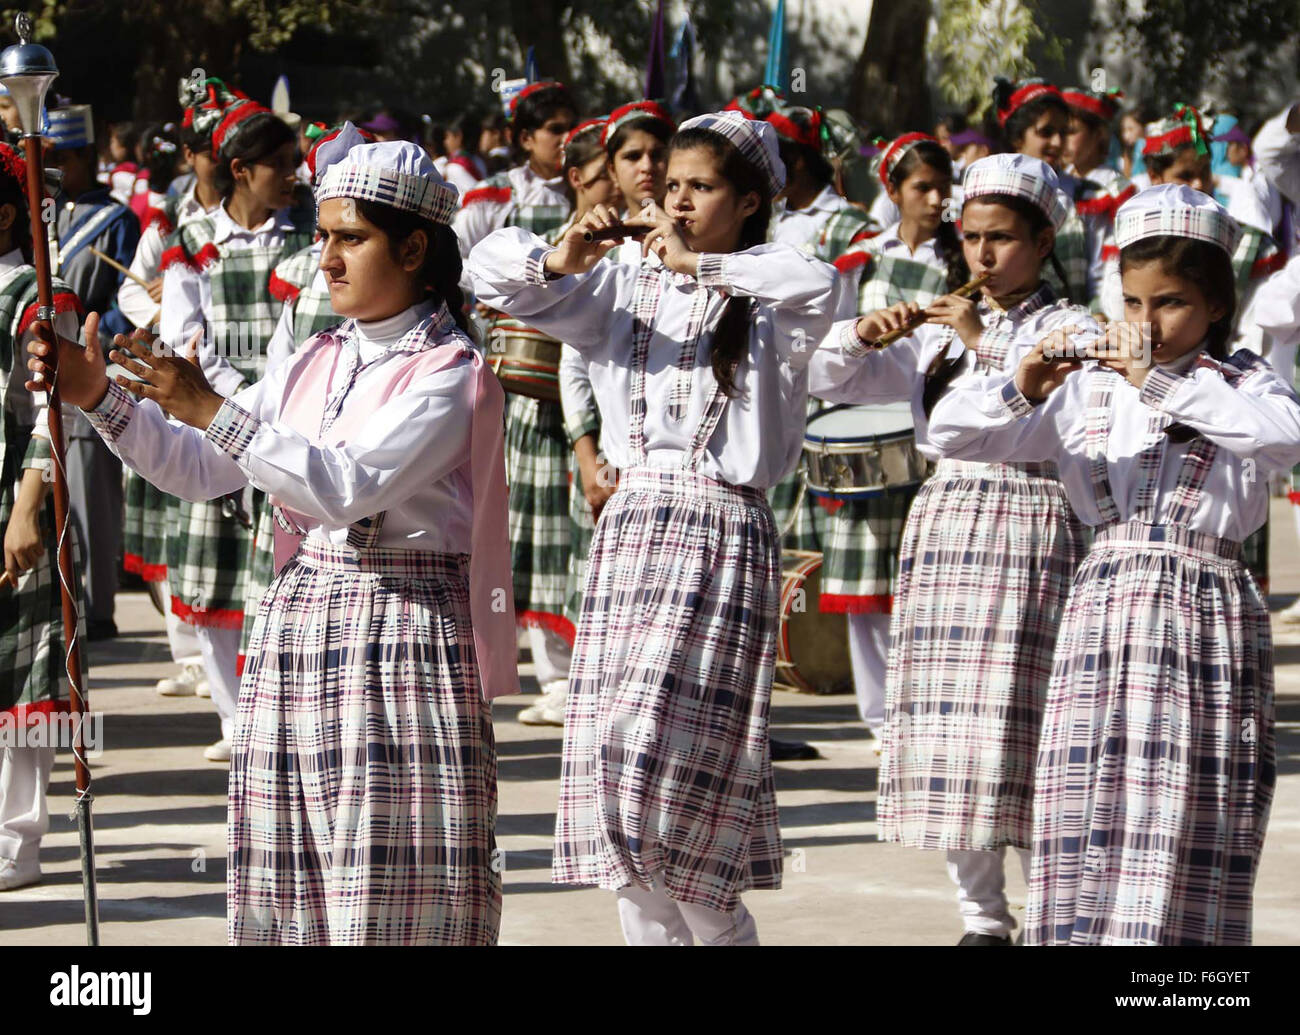 Students are participating in annual Sports Gala organized by Government of Khyber Pakhtunkhwa in Peshawar on Tuesday, - Stock Image